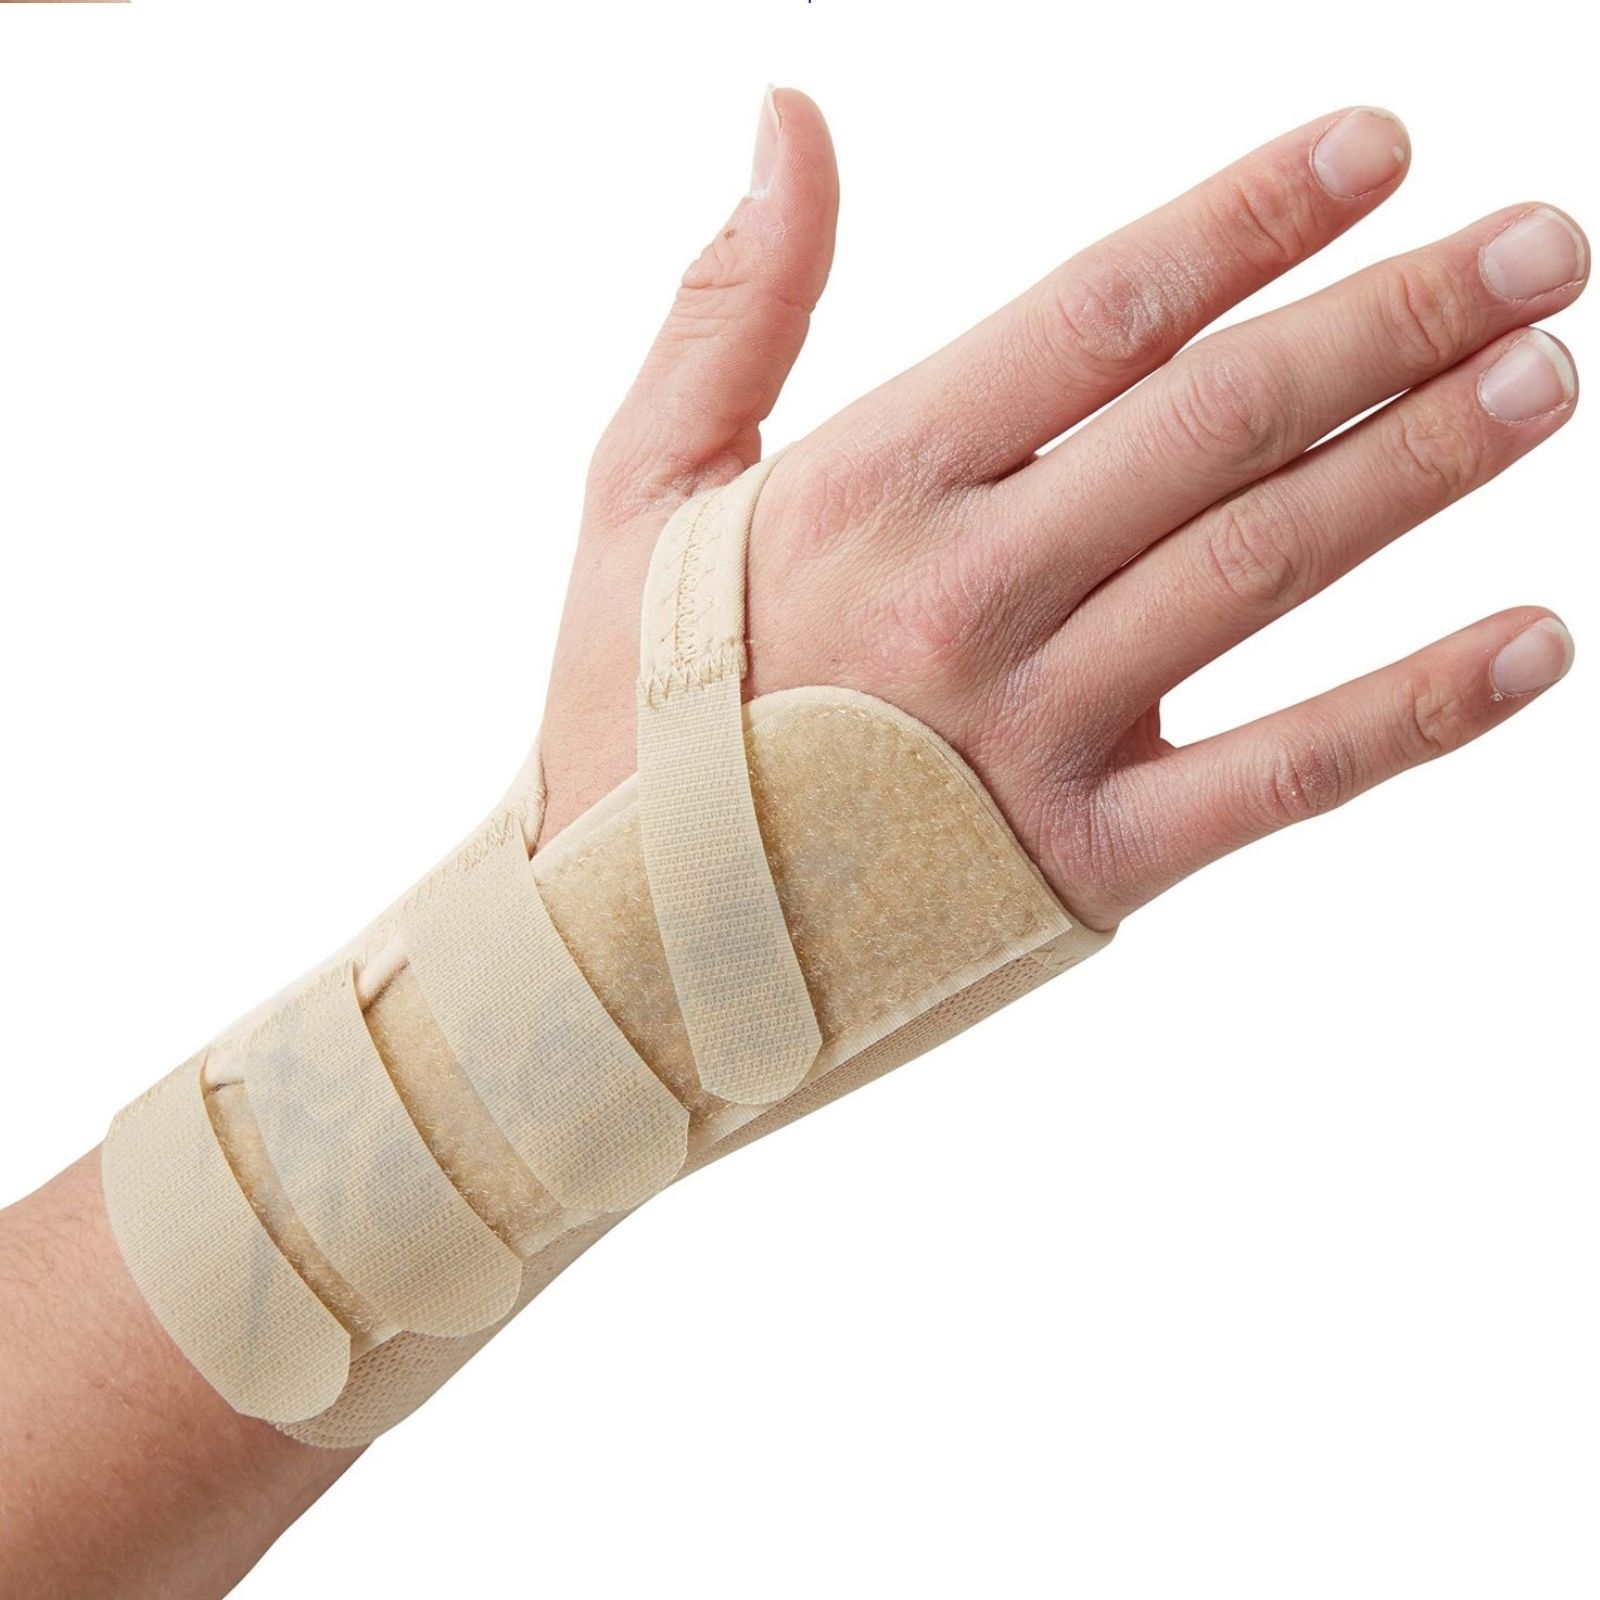 Motorcycle gloves carpal tunnel syndrome - Click On The Image To Enlarge